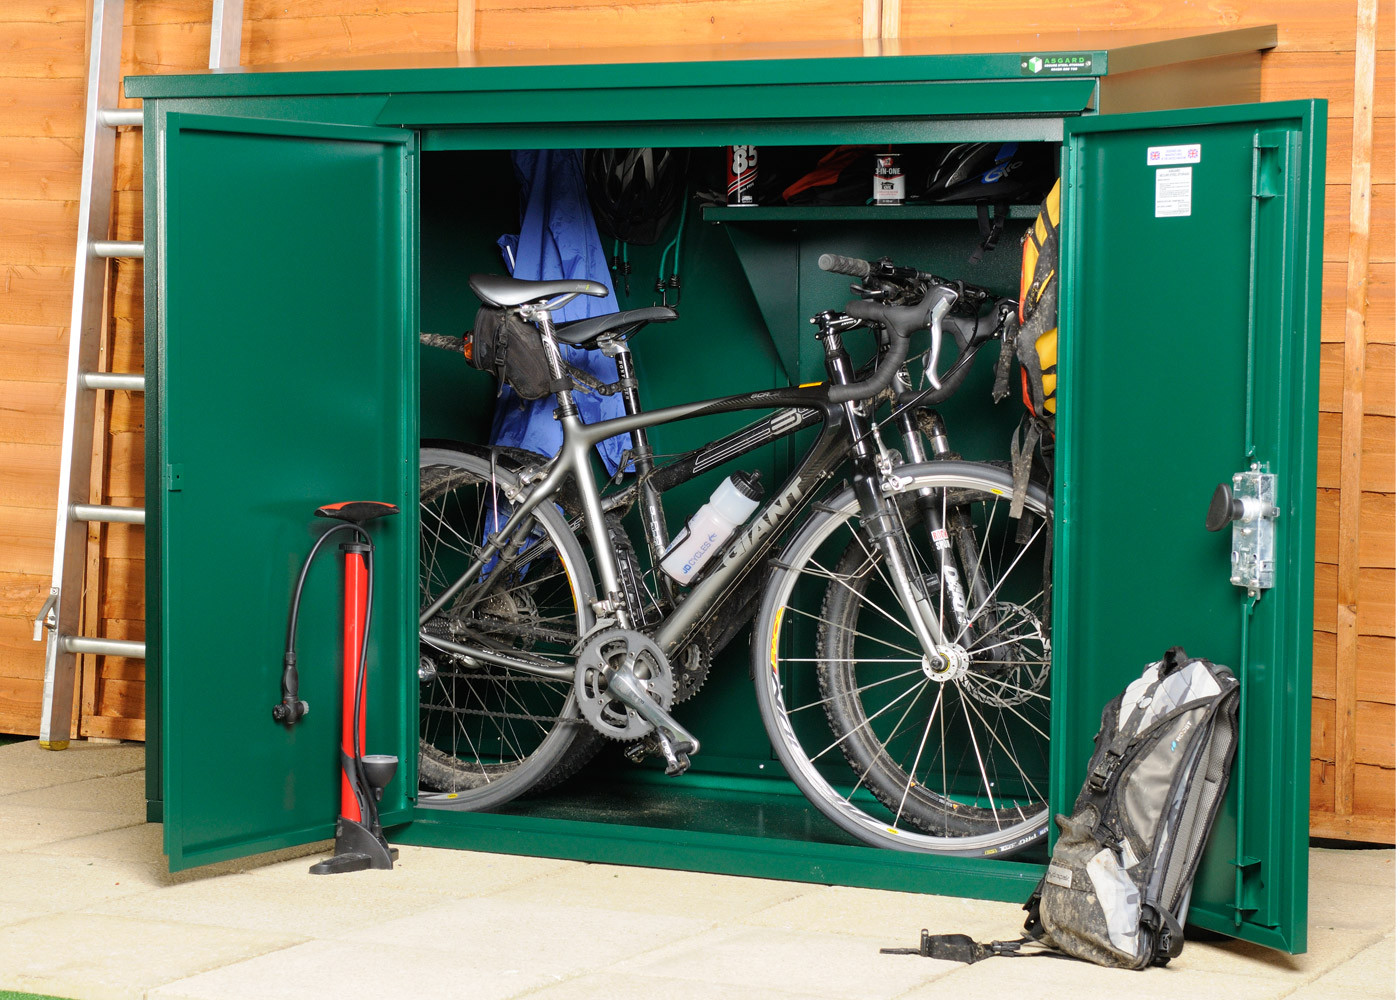 Fashionable metal bike shed, storage for storing 3 bikes ... zkhzmhy